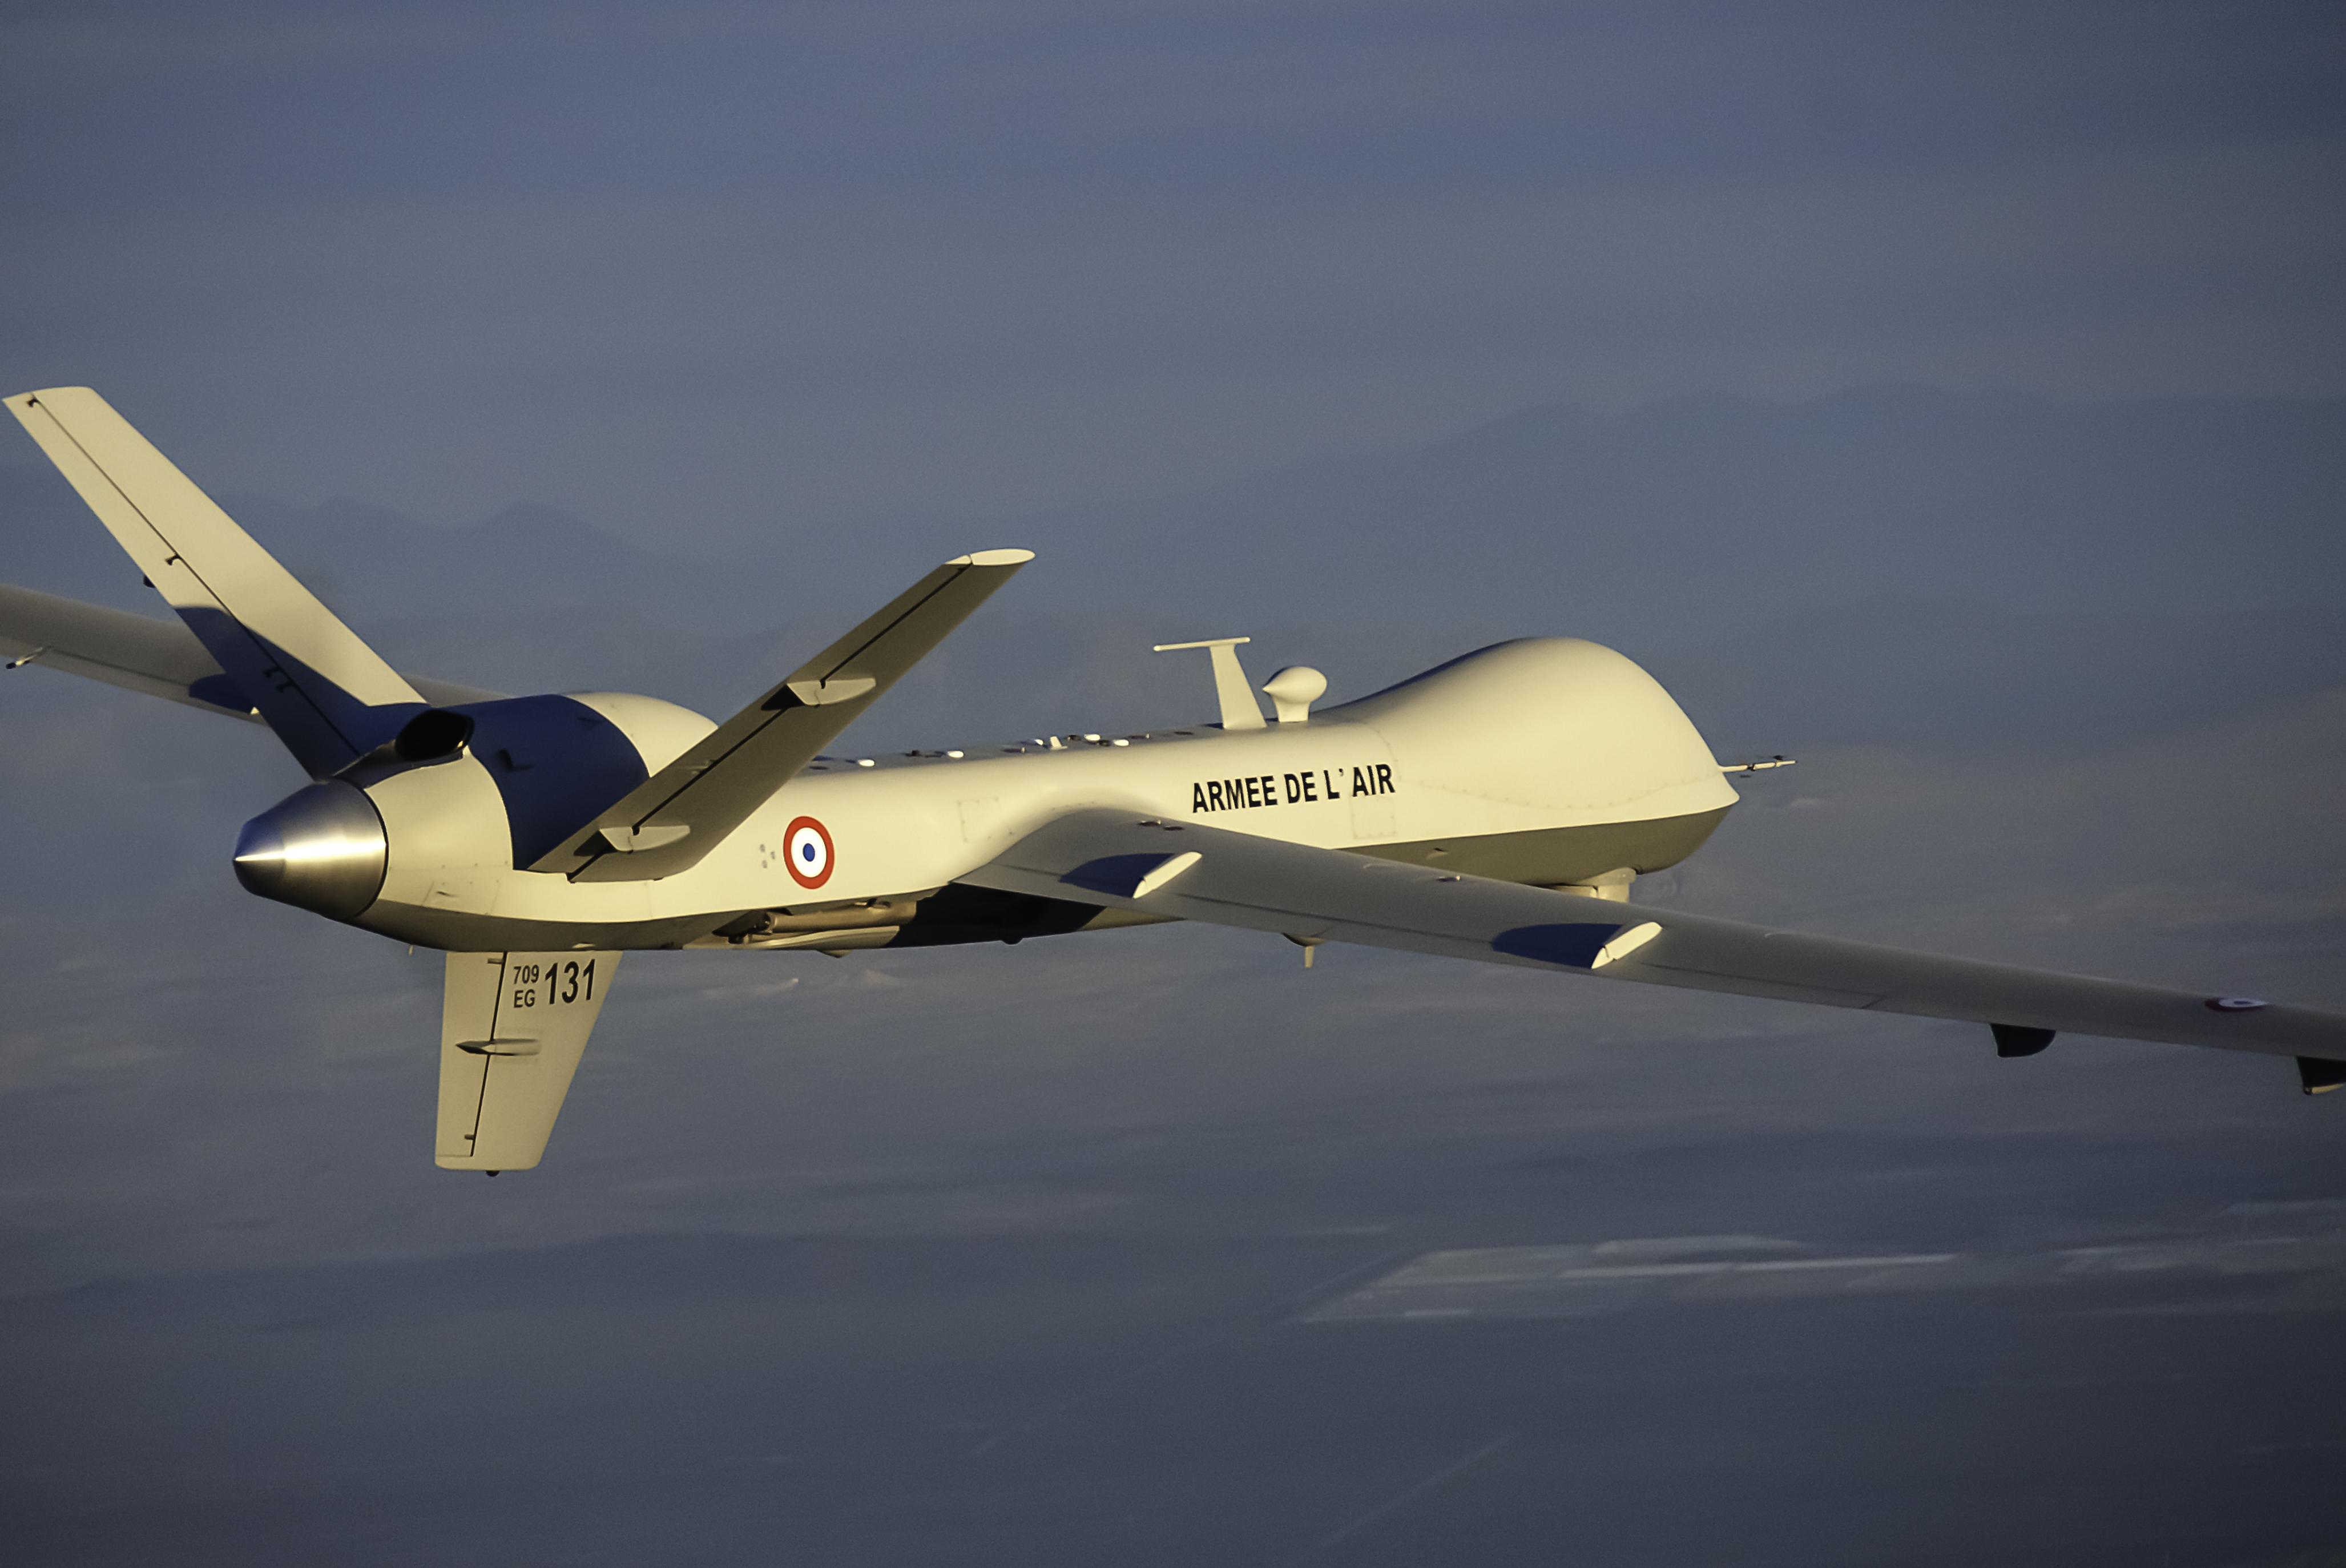 Predator B/MQ-9 Reaper remotely piloted aircraft (RPA)